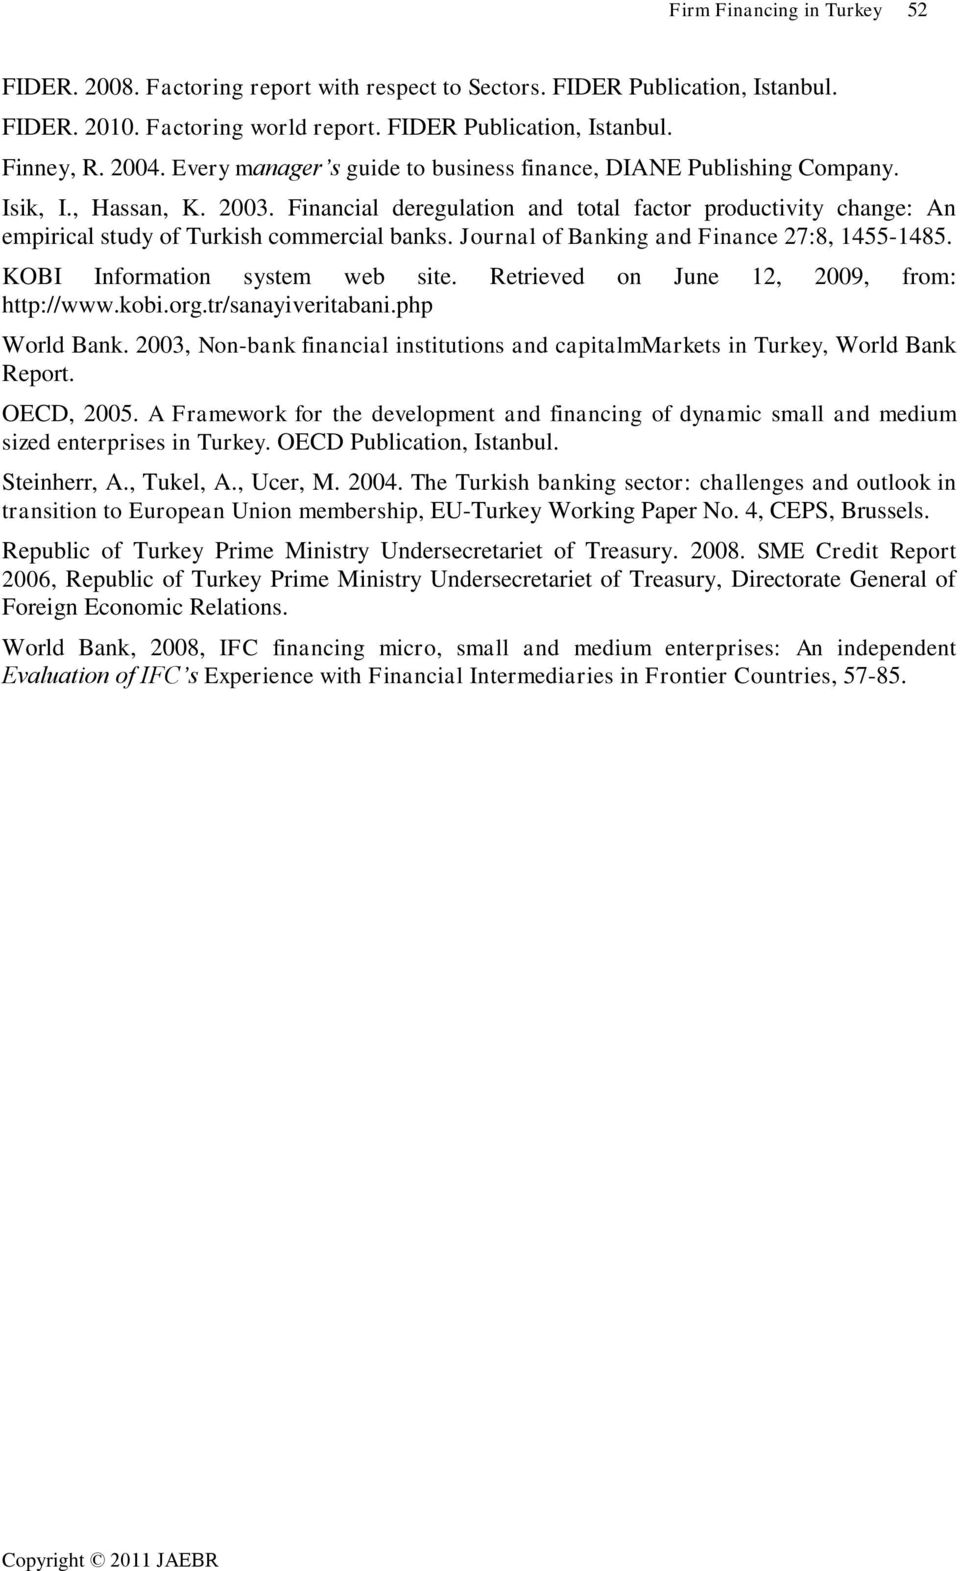 Financial deregulation and total factor productivity change: An empirical study of Turkish commercial banks. Journal of Banking and Finance 27:8, 1455-1485. KOBI Information system web site.